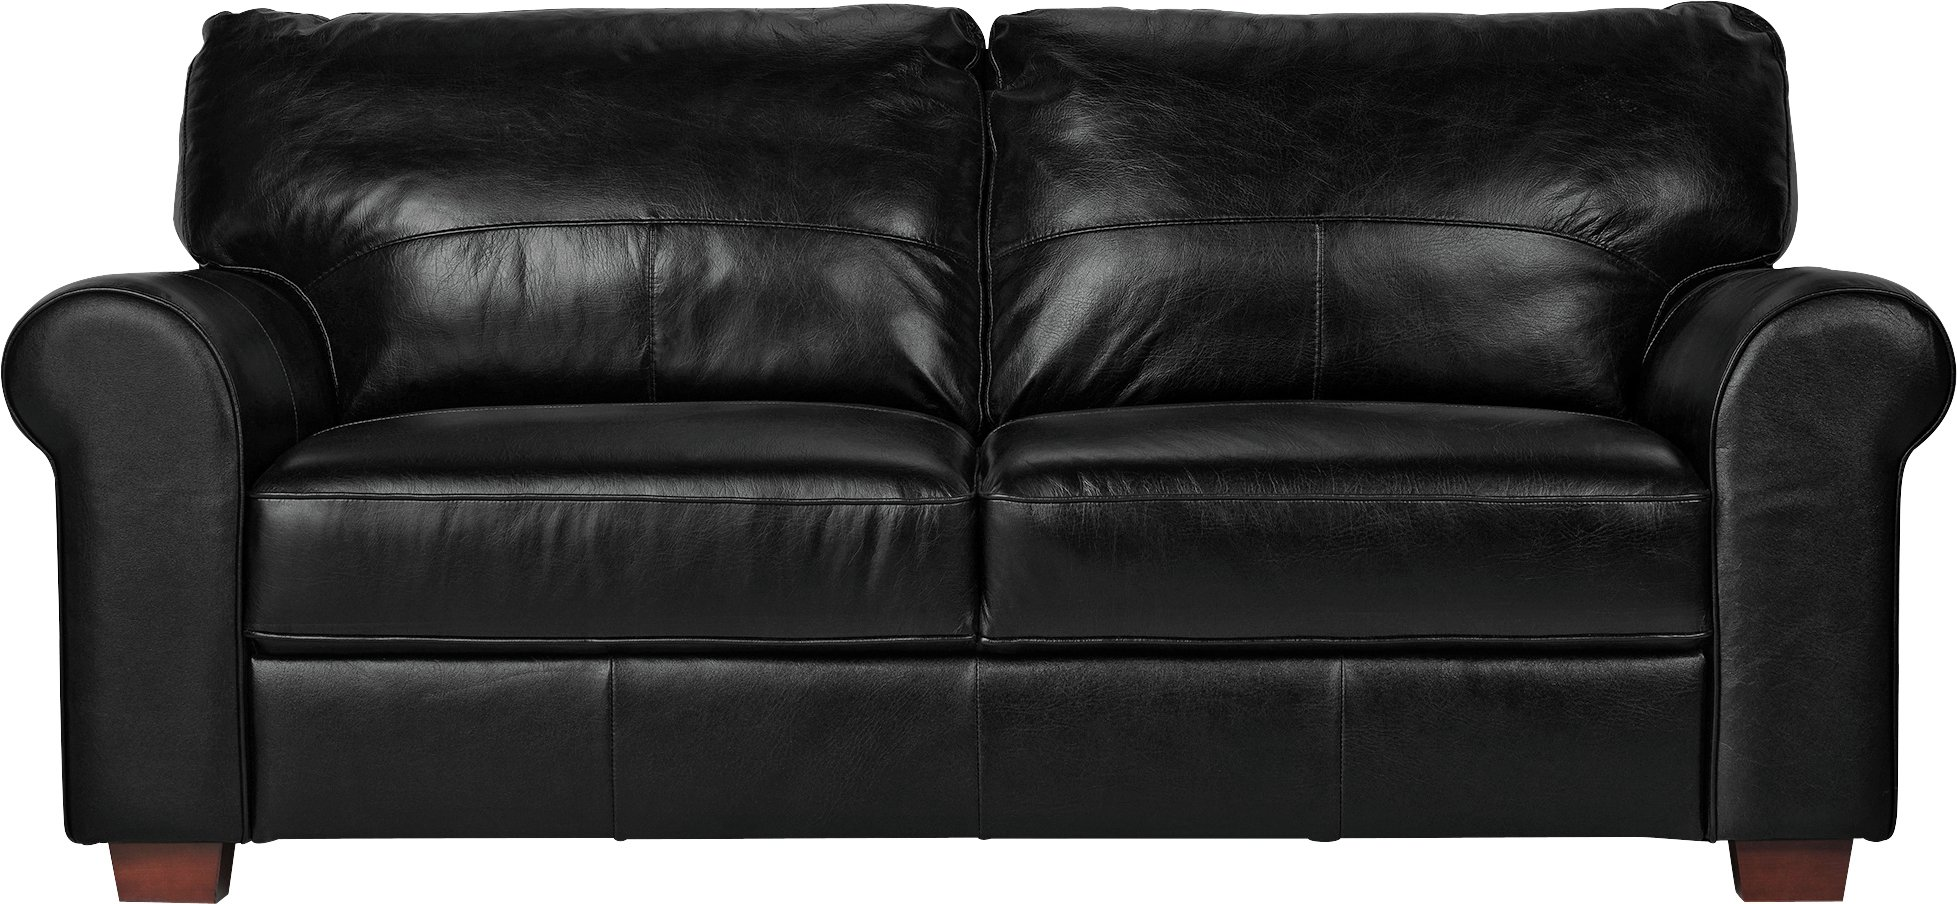 Buy Argos Home Salisbury 3 Seater Leather Sofa Black Sofas Argos